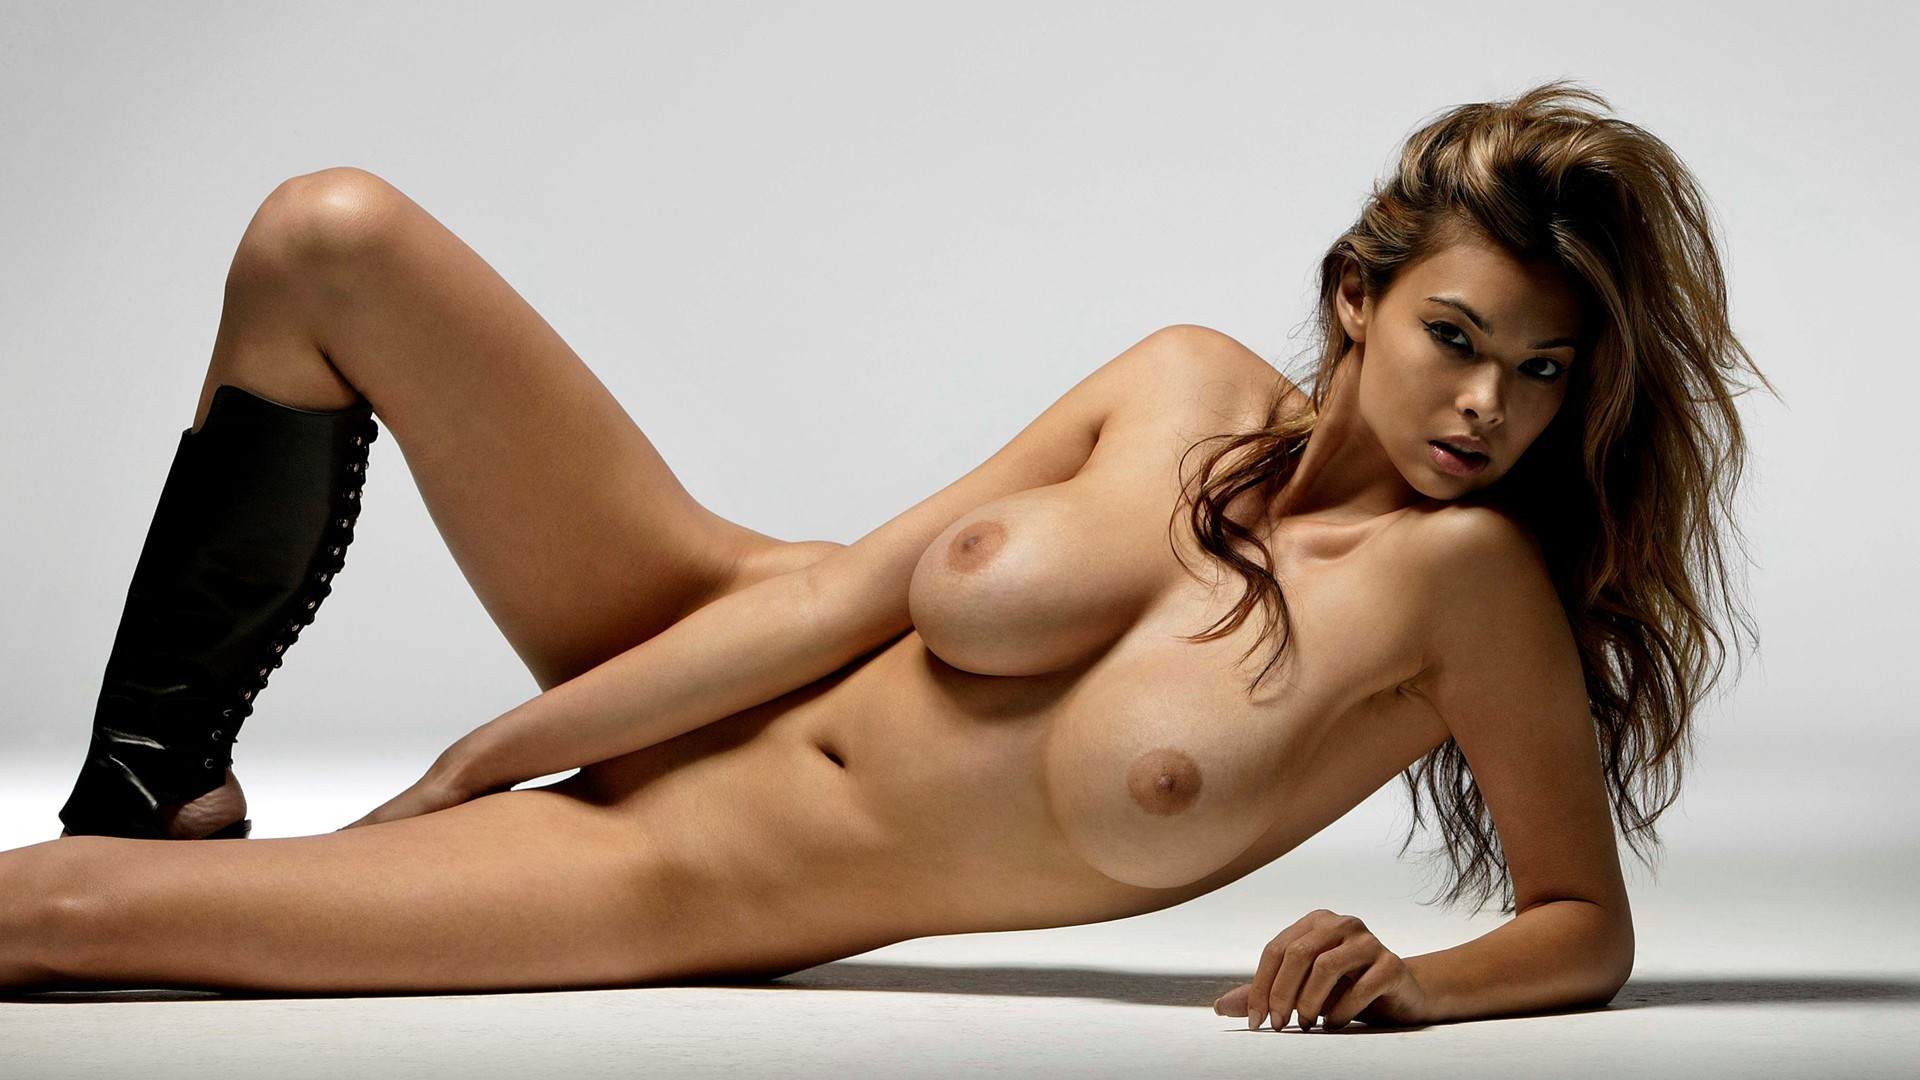 Hot girlporn stars naked — 7